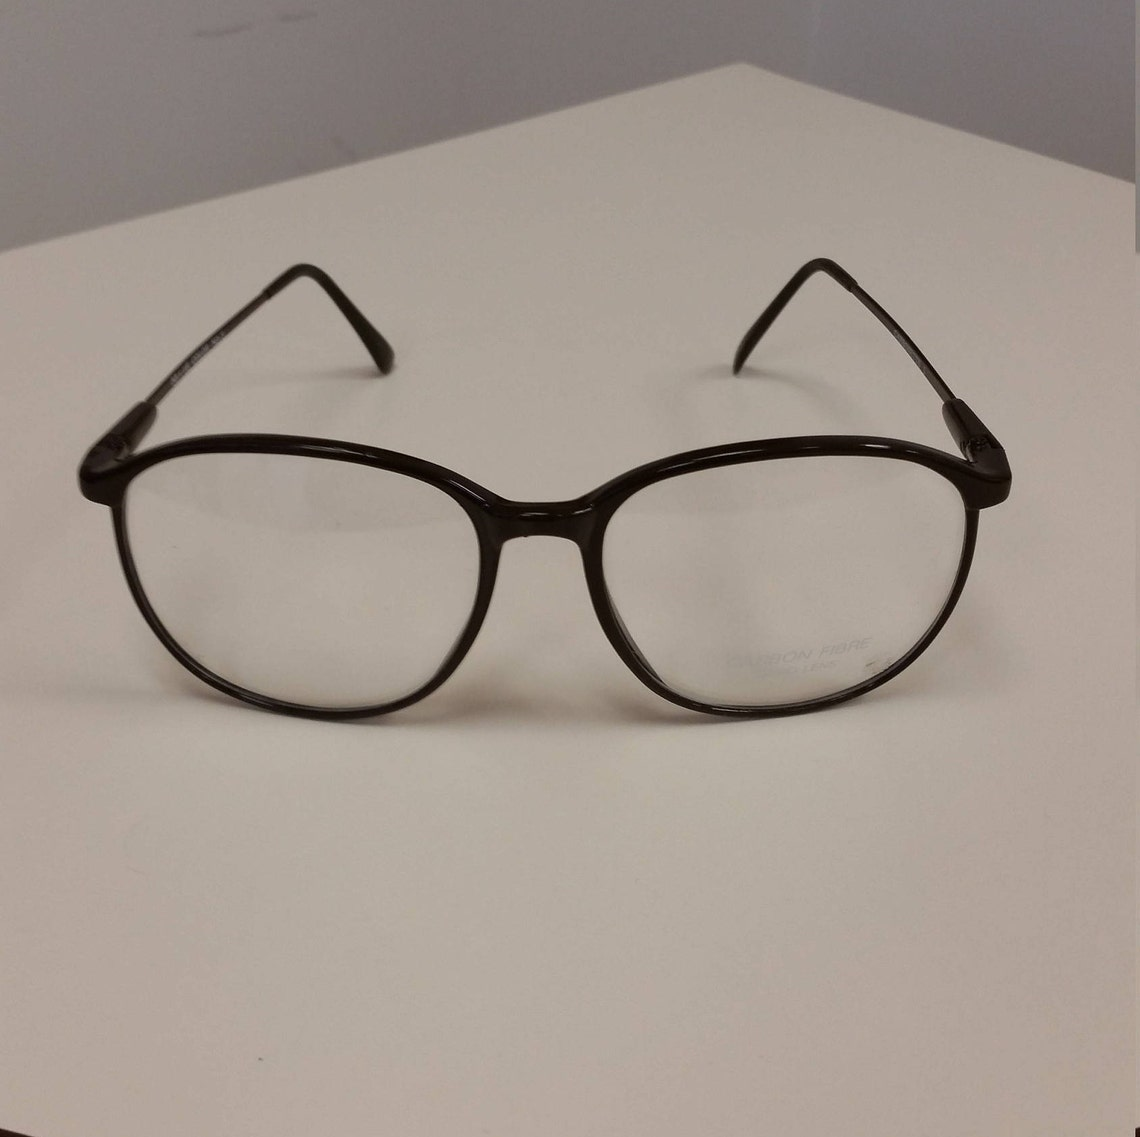 1970s Brown Carbonette Eyeglasses Frame; New/Old Stock w/ Orig Sample Lenses; Excellent Vintage Condition; Rx-able and Ready for Your Lenses